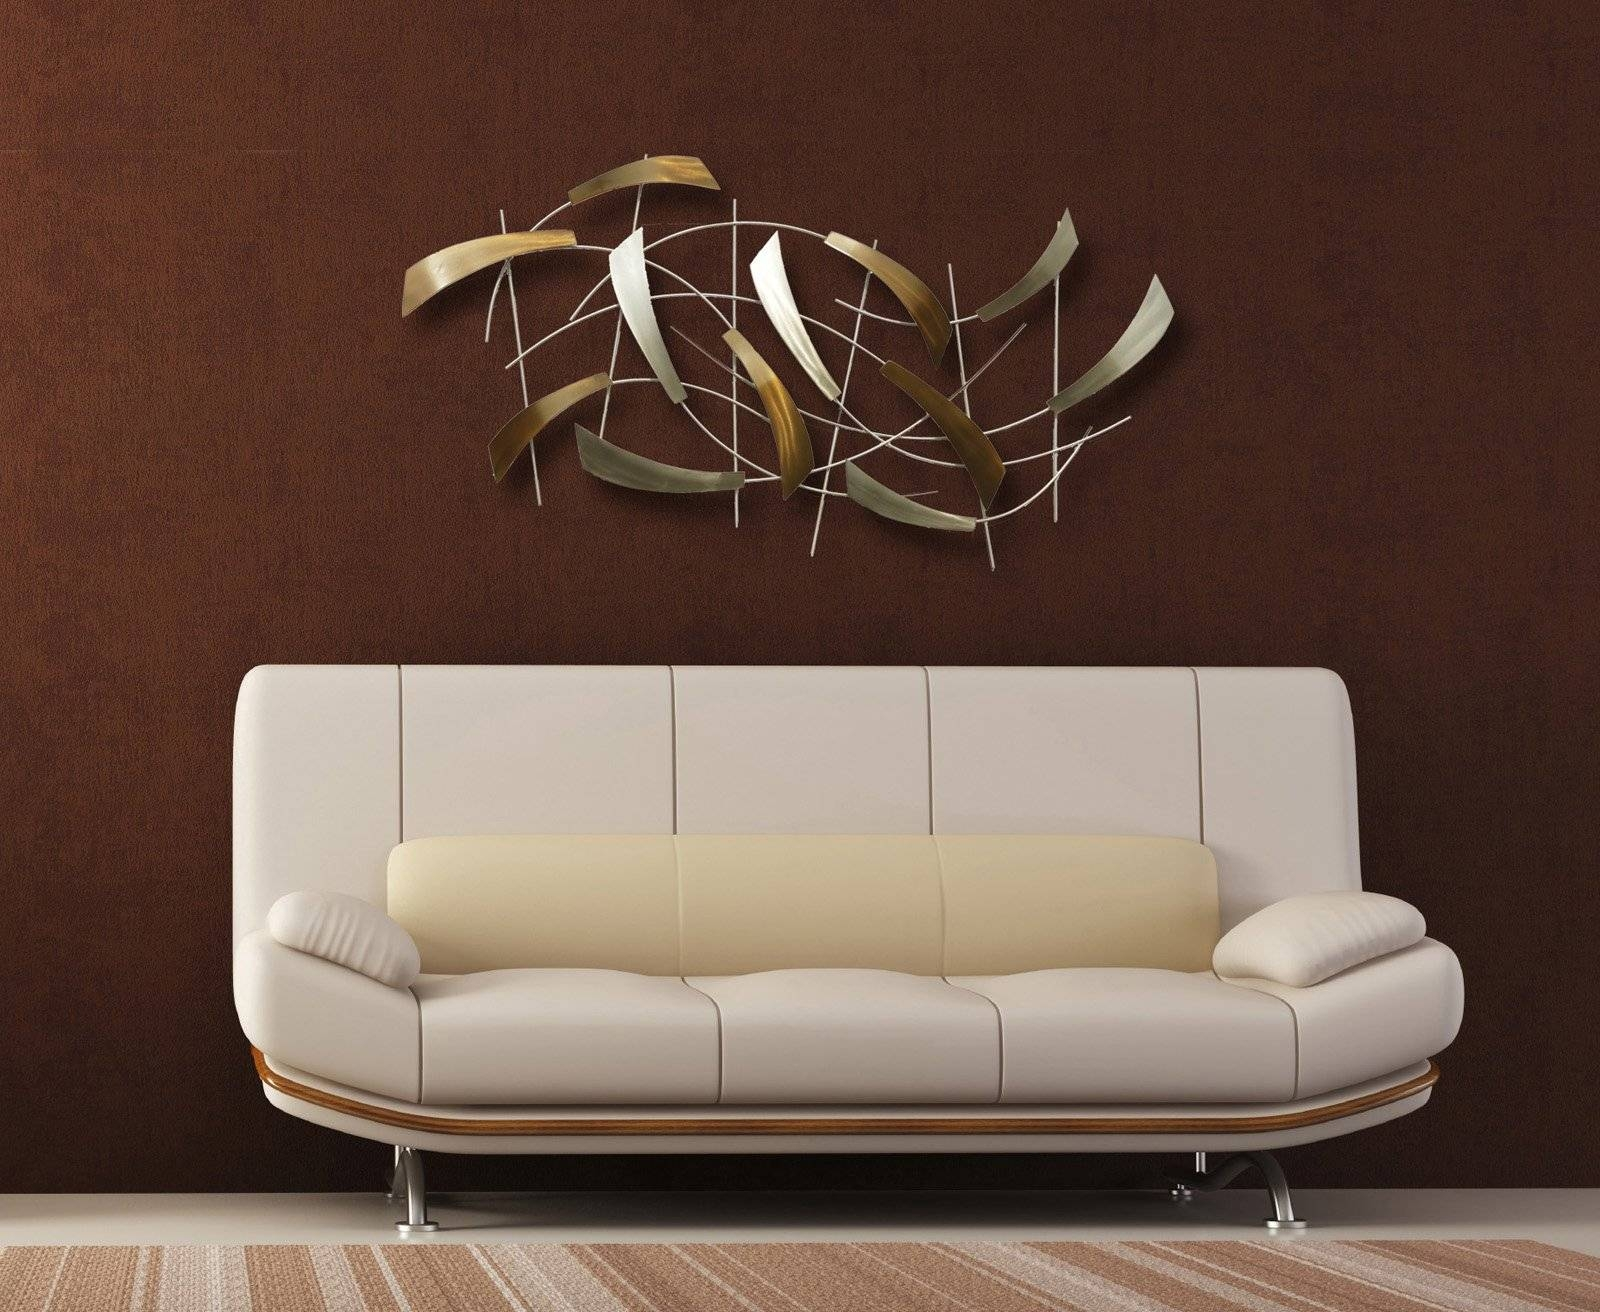 Nova Lighting 12652 Tidal Contemporary Wall Art / Wall Decor Nv 12652 For Most Recently Released Nova Wall Art (Gallery 12 of 20)